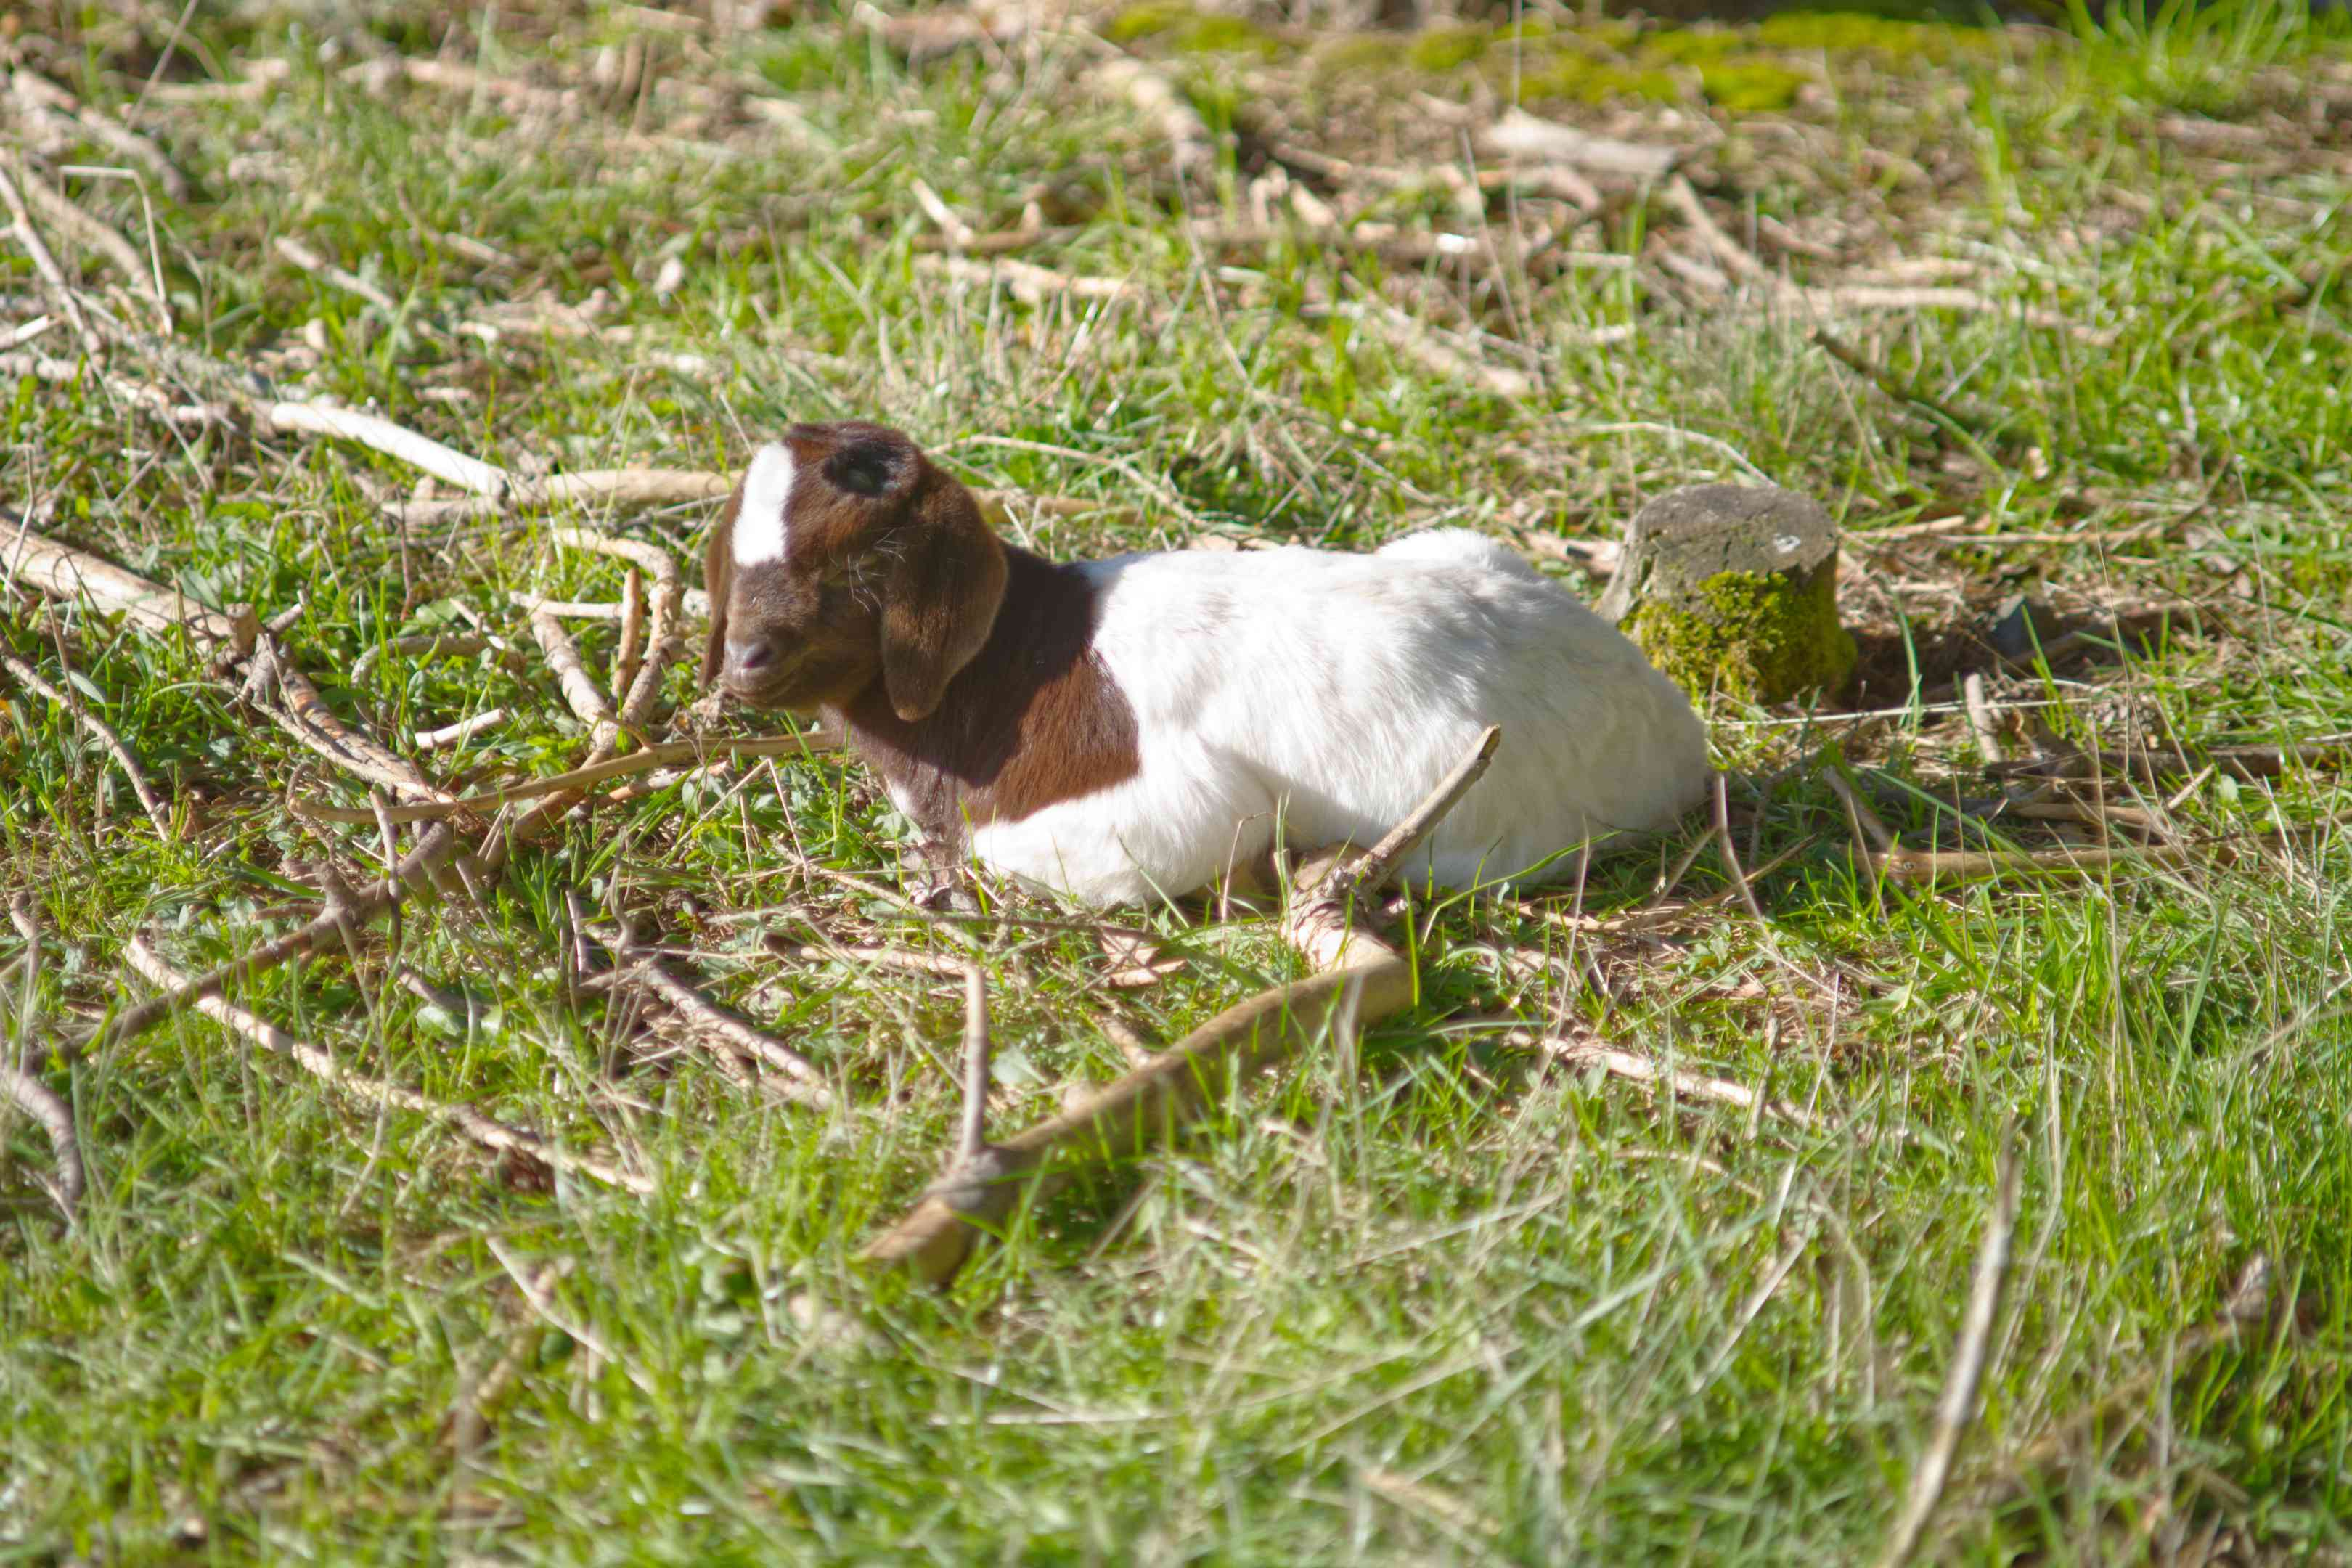 brown and white baby goat sits alone on grassy field